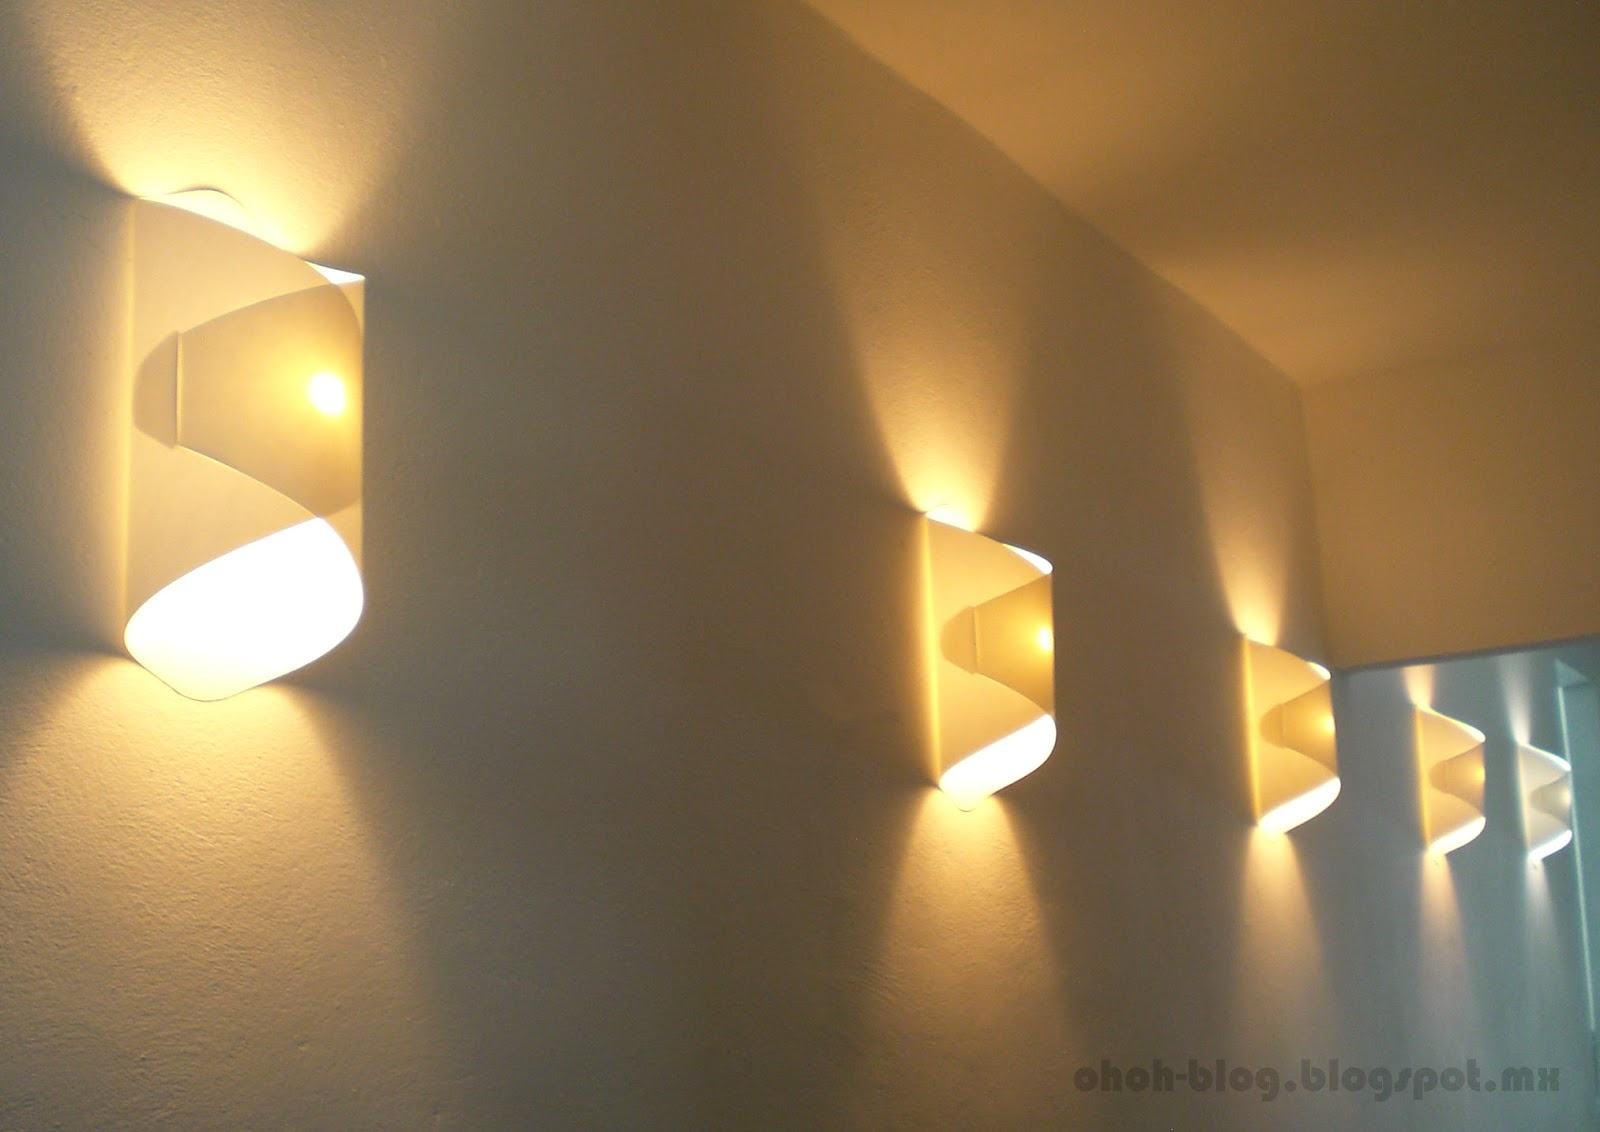 Diy paper lamp lampara de papel ohoh blog for Papel decorativo para pared